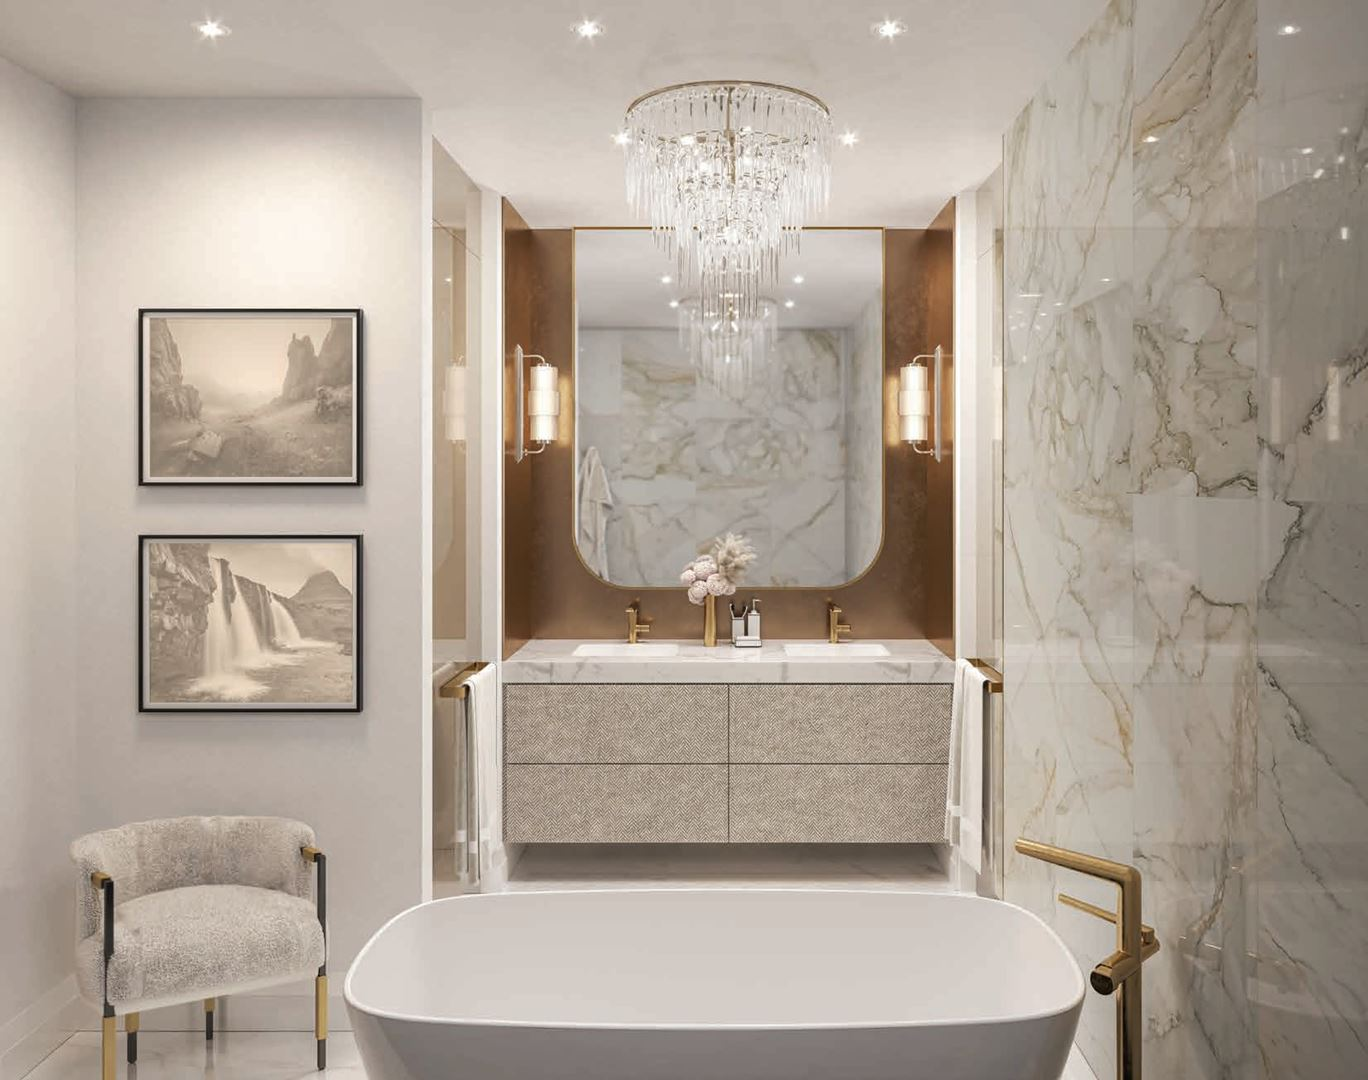 2021_01_12_04_53_16_savileontheroe_blockdevelopments_rendering_bathroom